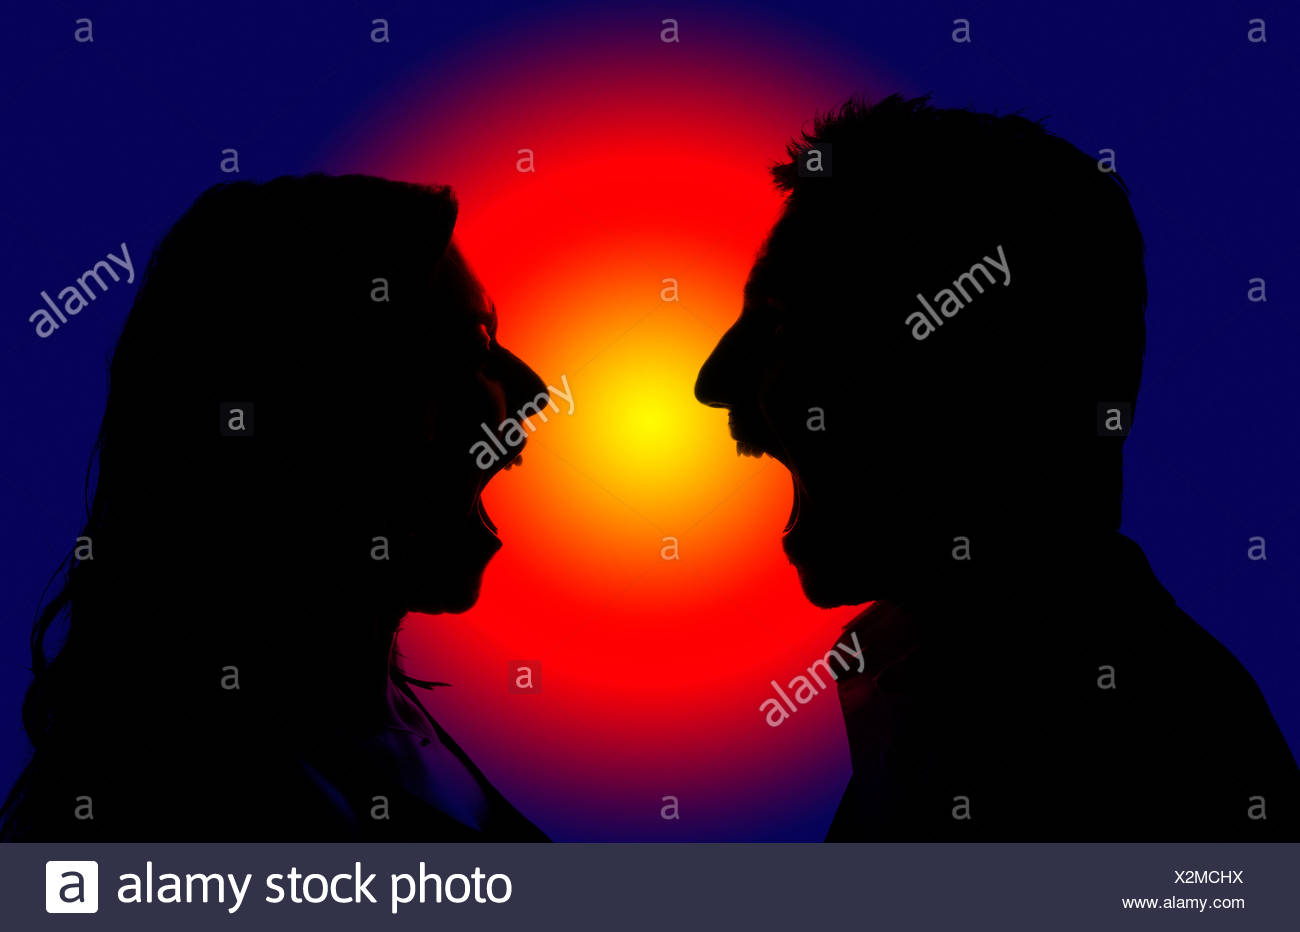 A man and a woman yelling at each other, silhouette against a red and blue light - Stock Image